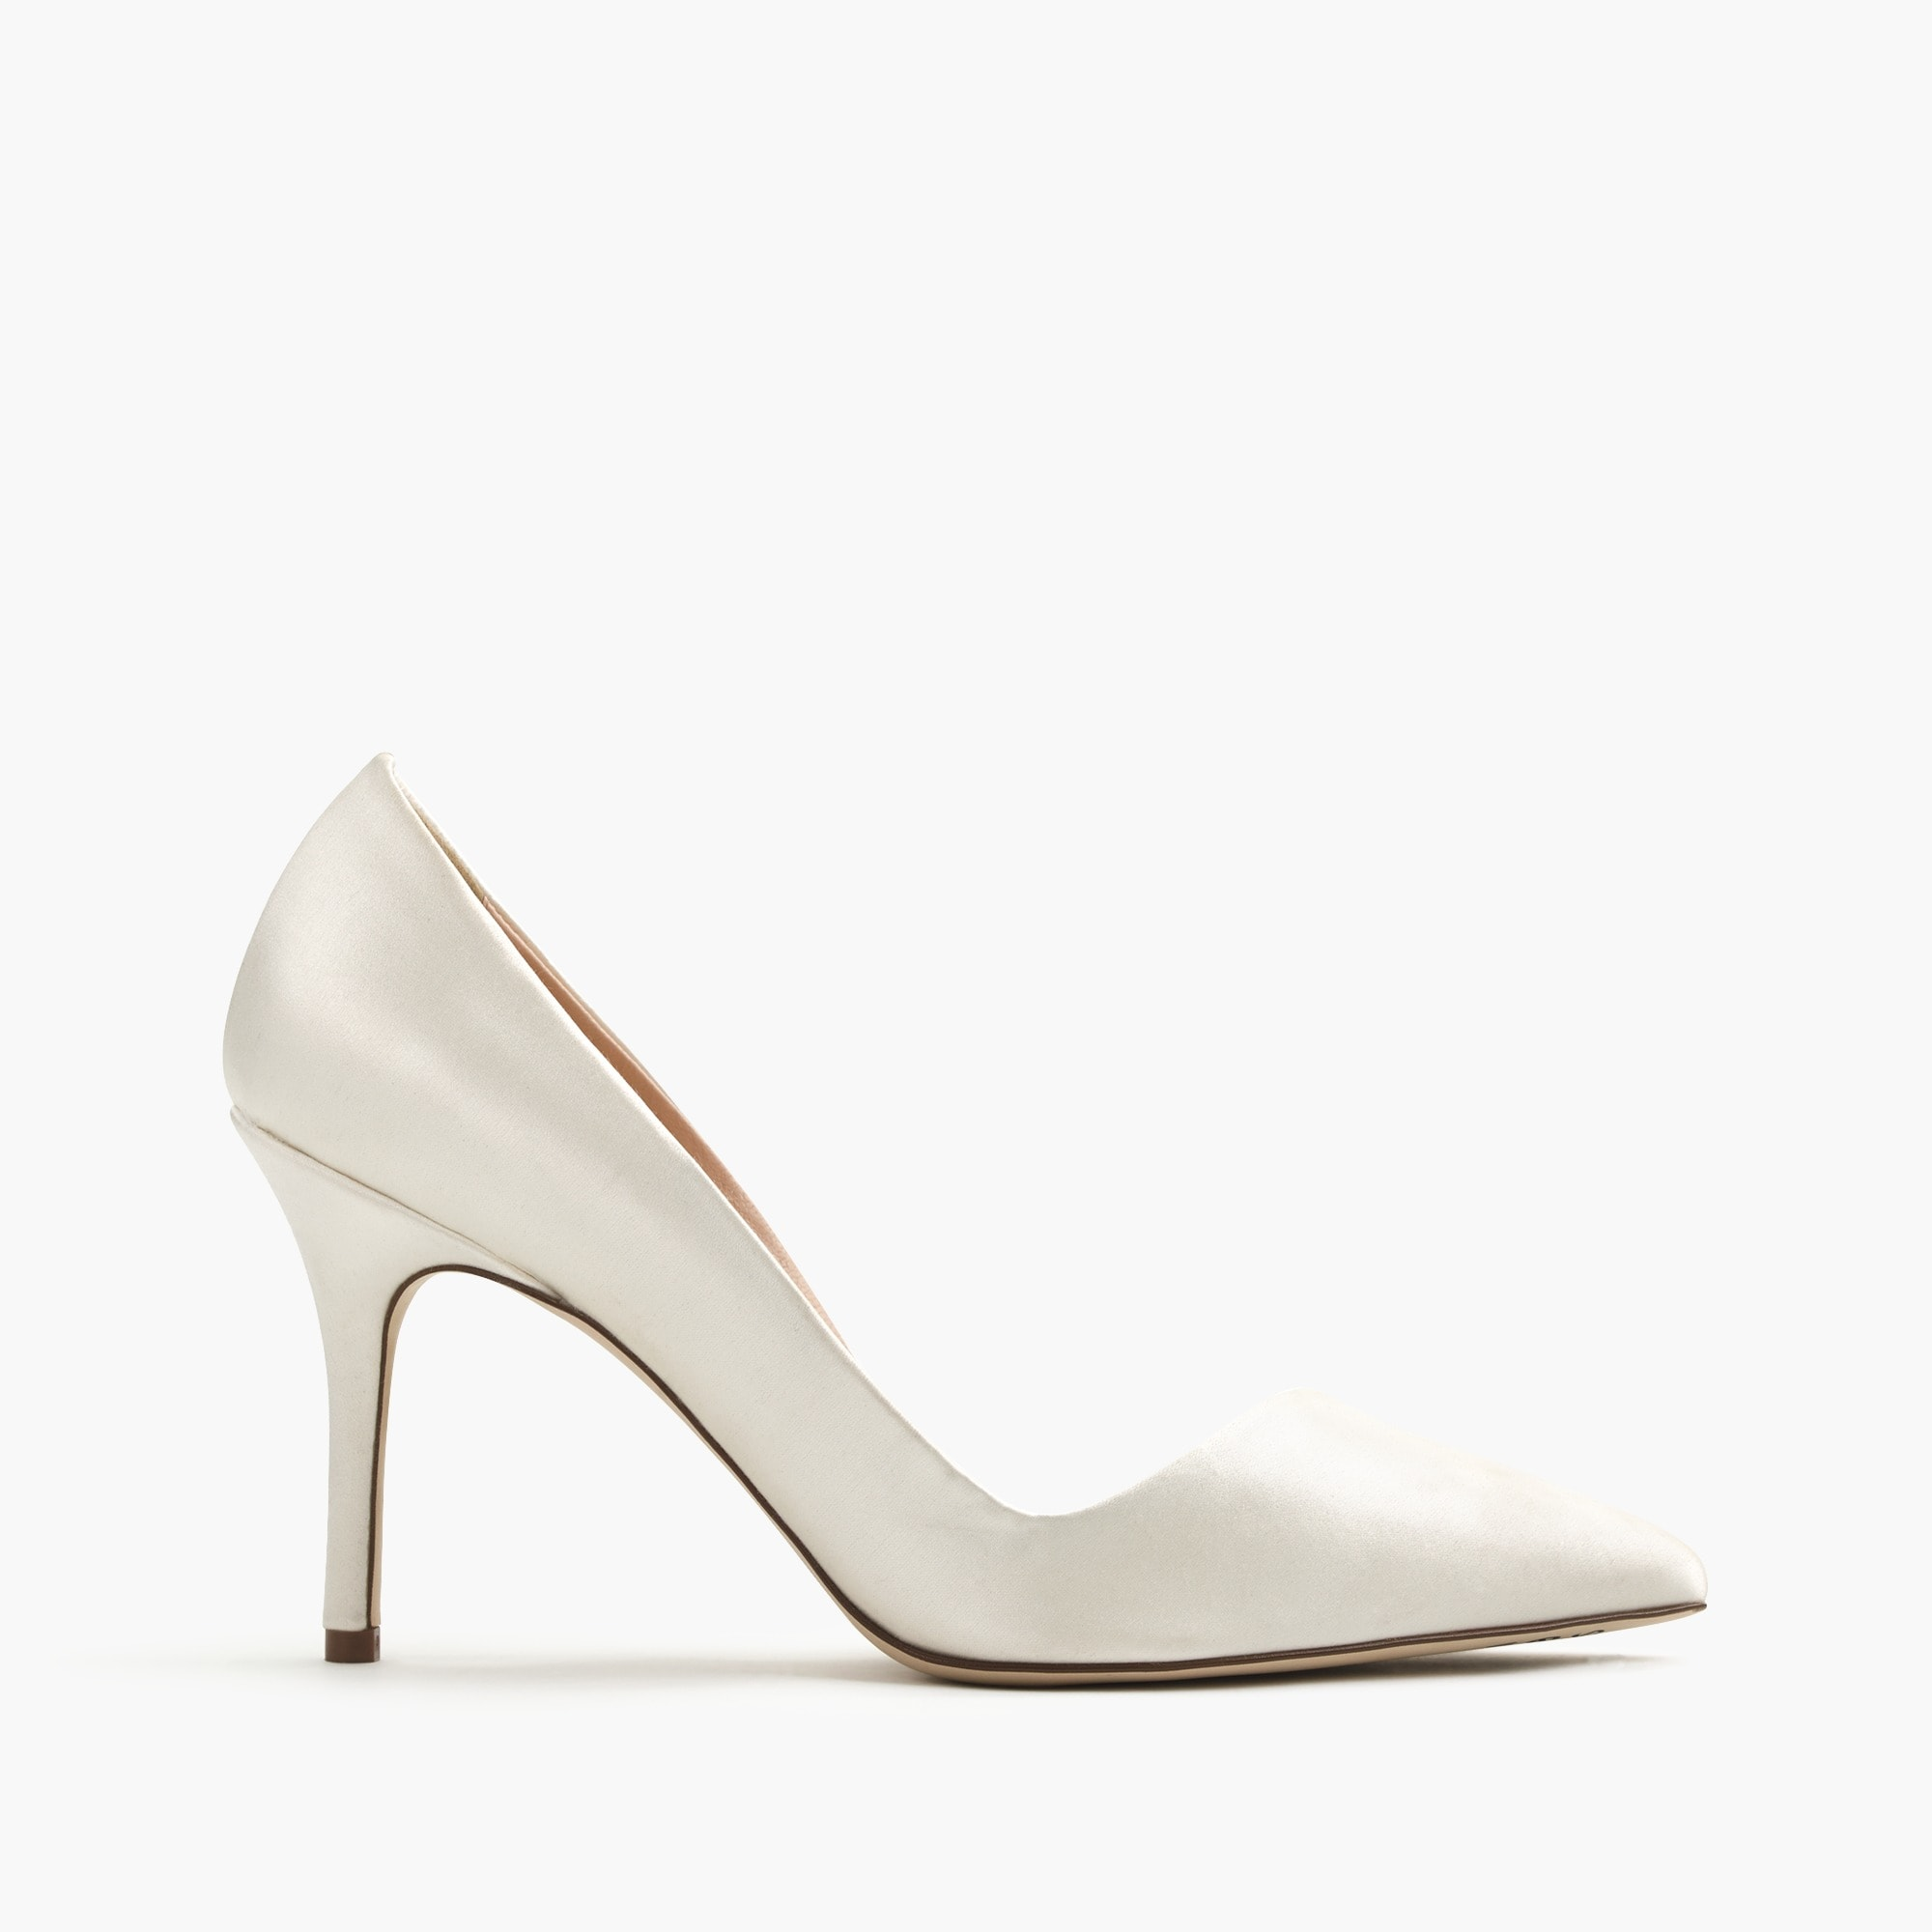 Elsie asymmetrical pumps in satin